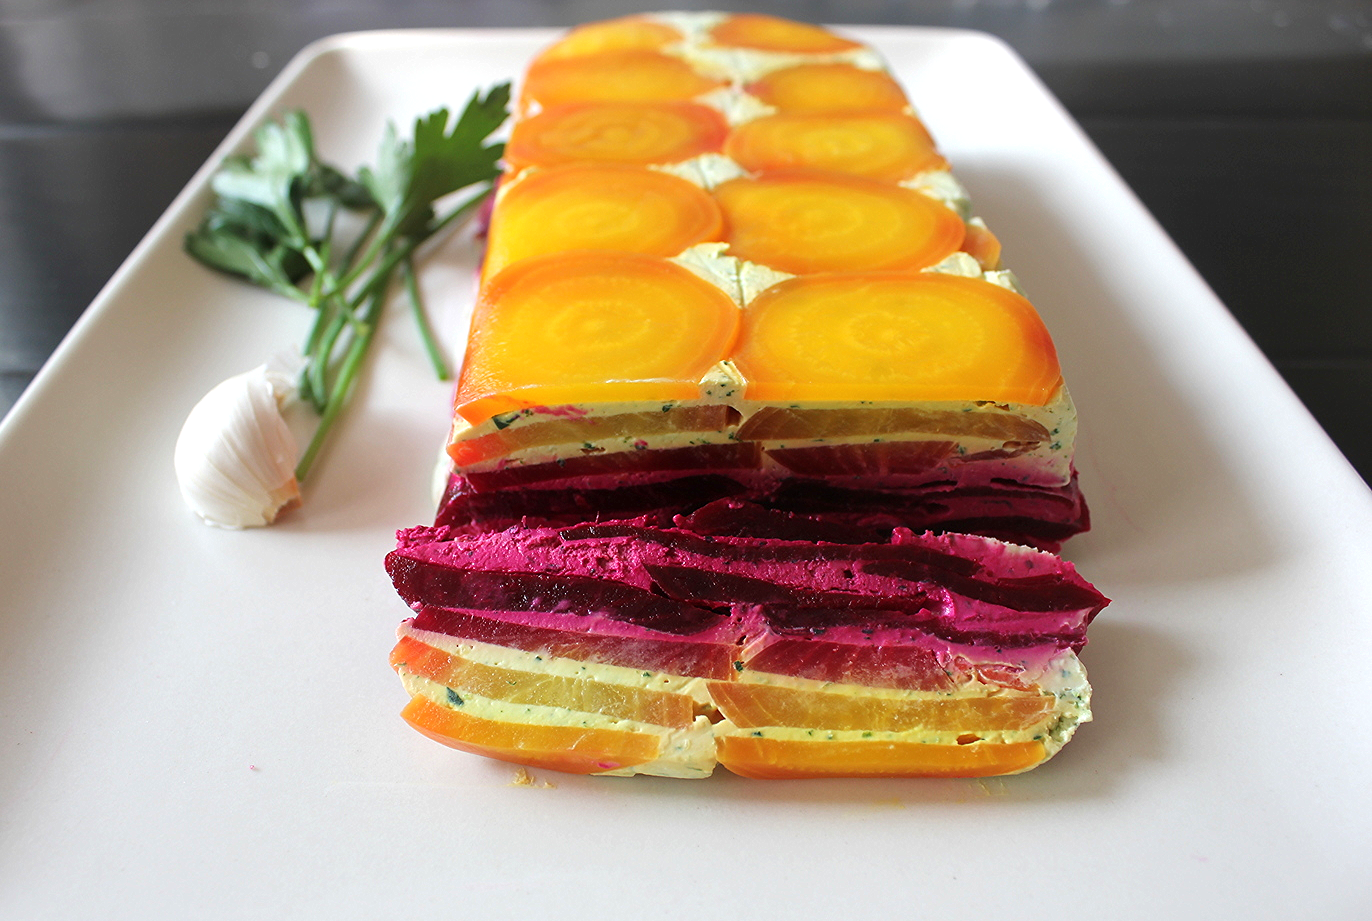 Beet, Goat Cheese and Garlic Herb Terrine by Hemsley + Hemsley - www.fancycasual.com